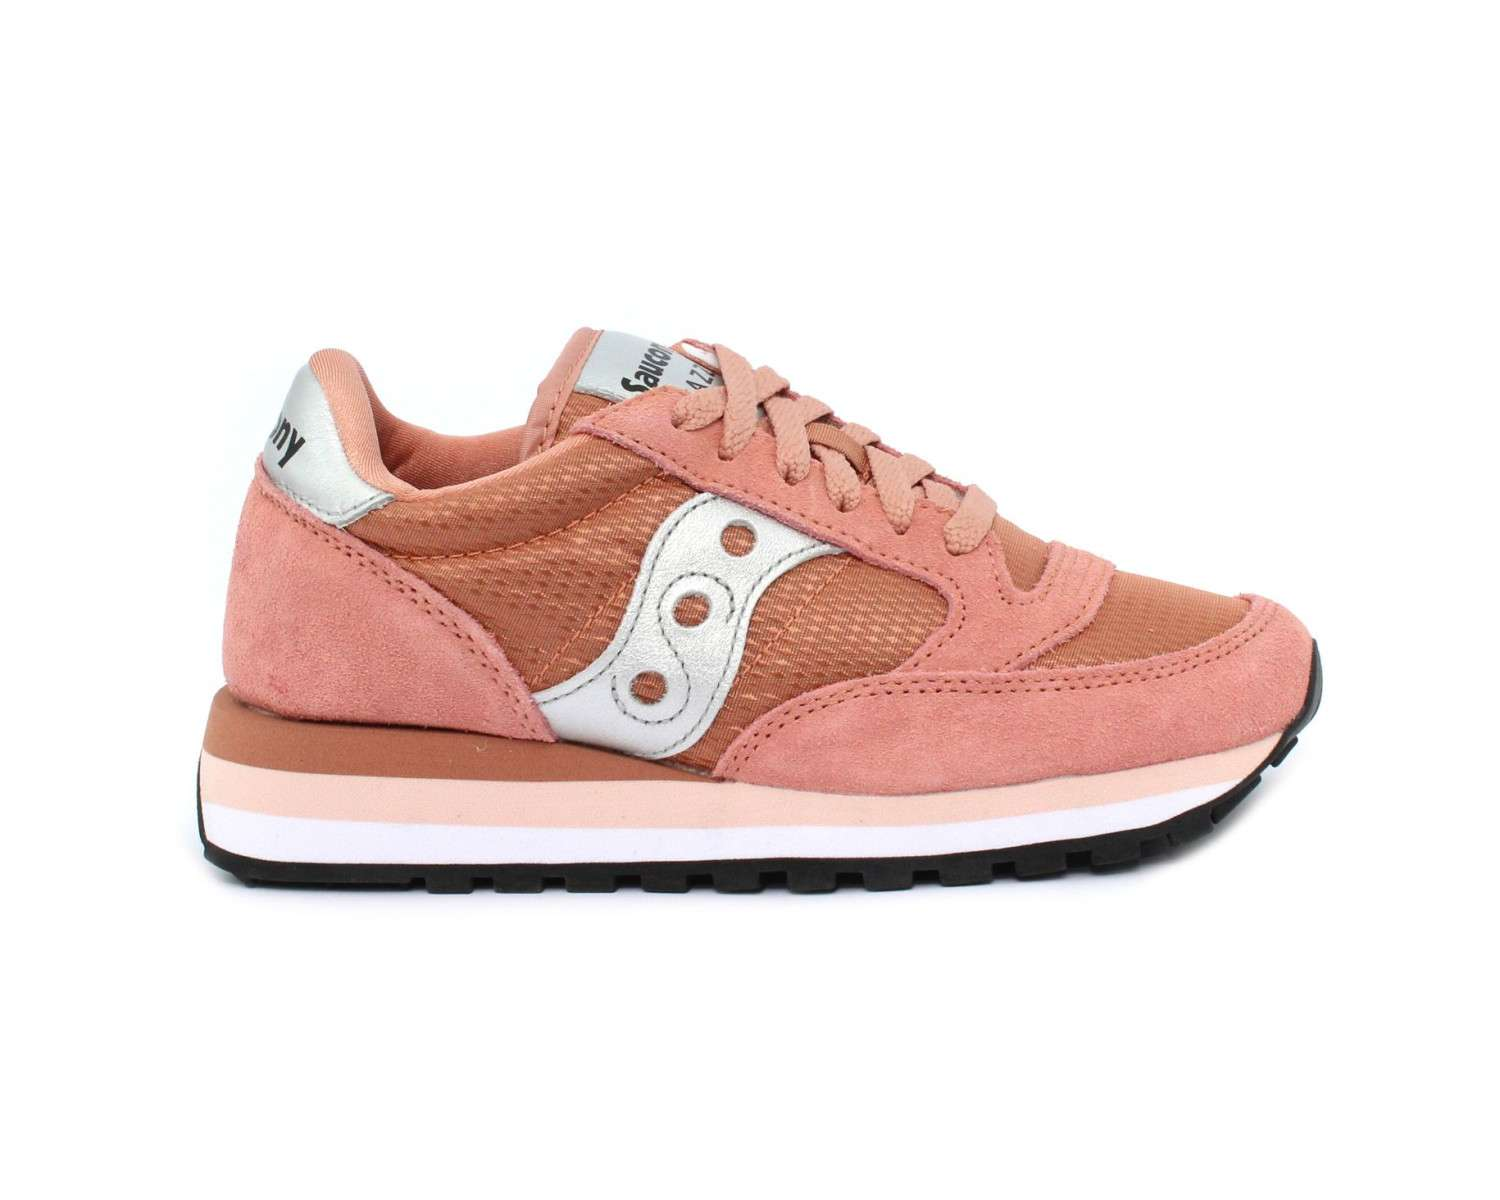 https://www.parmax.com/media/catalog/product/a/i/AI-Outlet_Parmax-Sneackers-Saucony-S60449-1-A.jpg